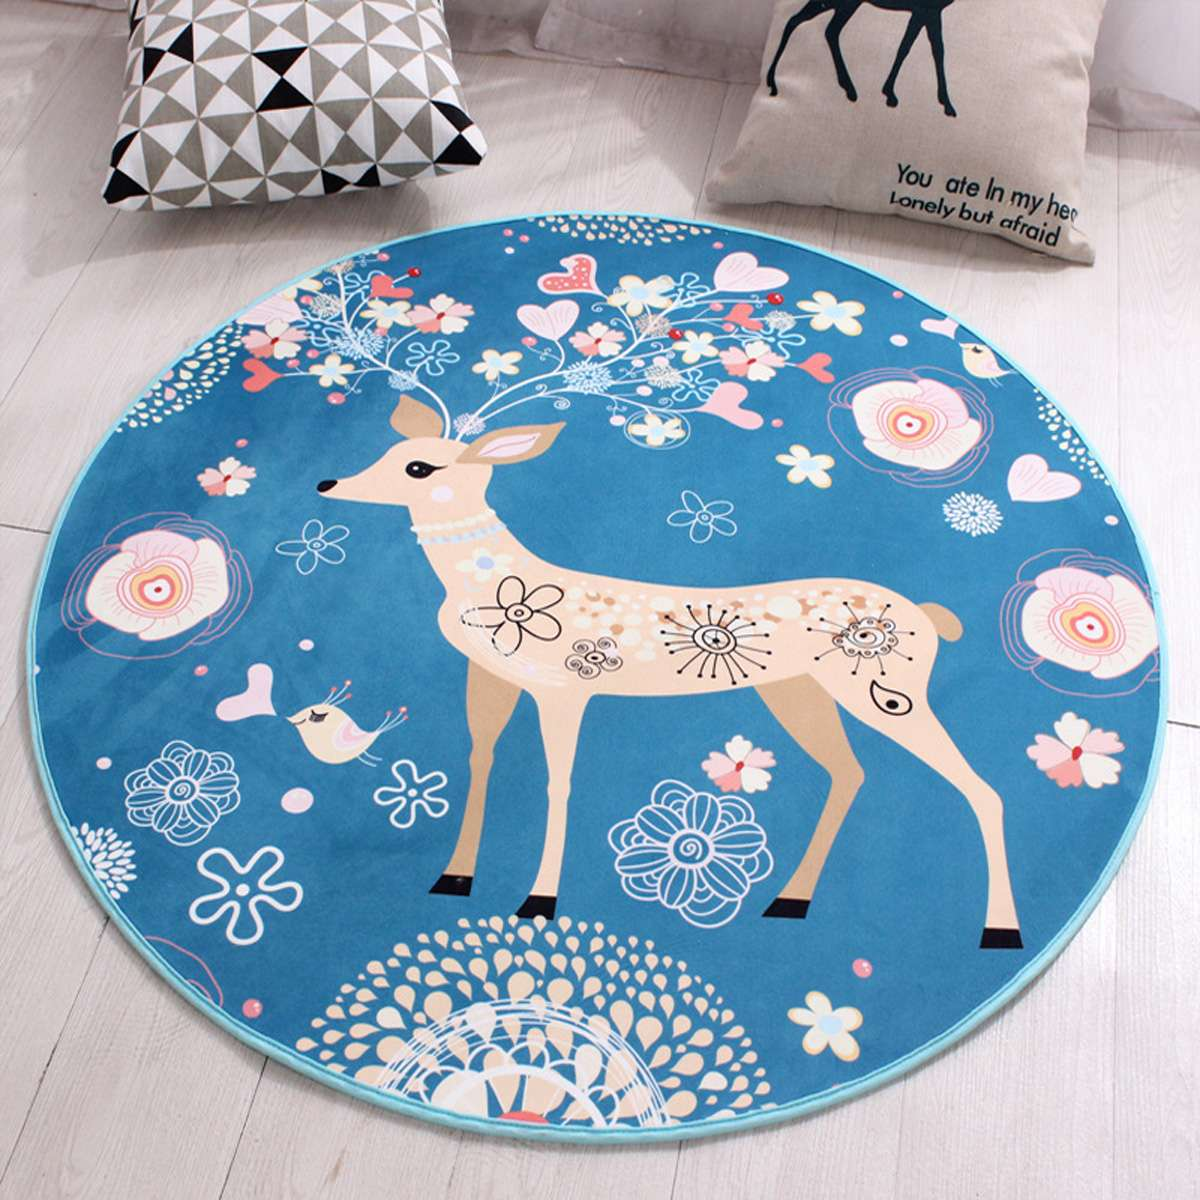 Deer Heart Floral Pattern Round Floor Mats Computer Chair Mat Antiskid Carpet For Living Room Bedroom Kids Room